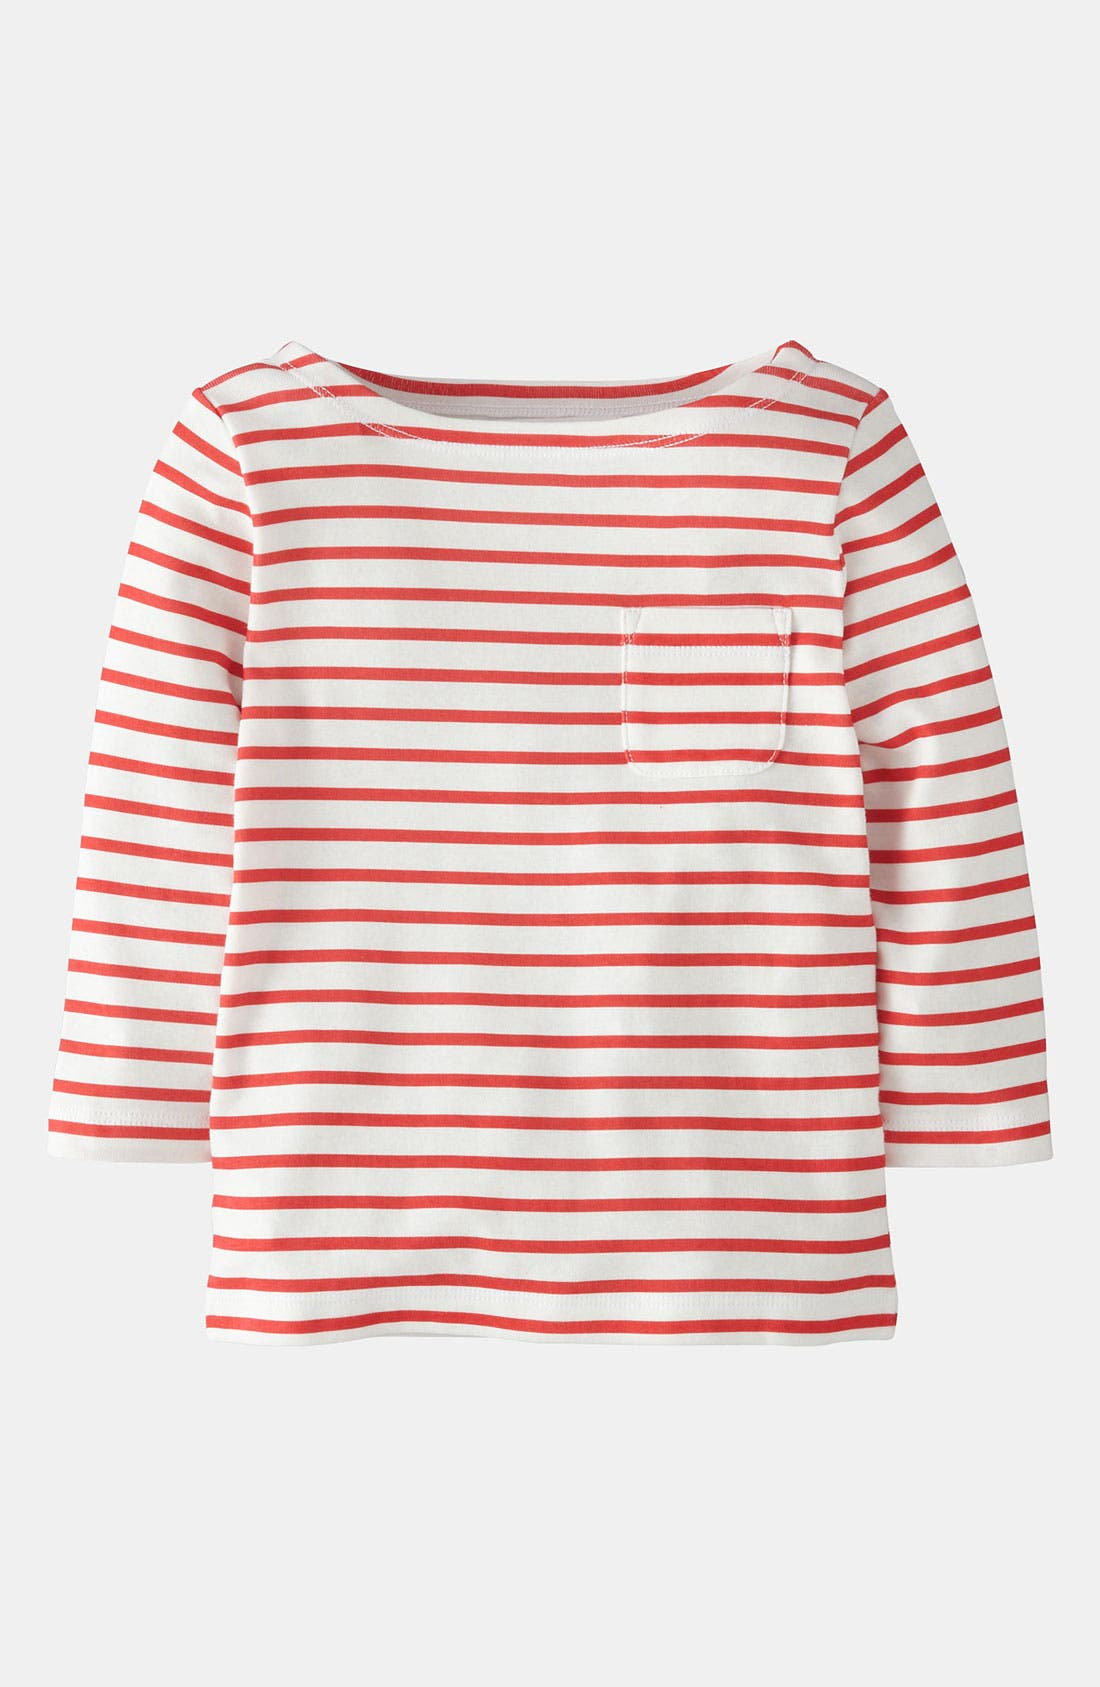 Alternate Image 1 Selected - Mini Boden 'Stripy' Boatneck Tee (Little Girls & Big Girls)